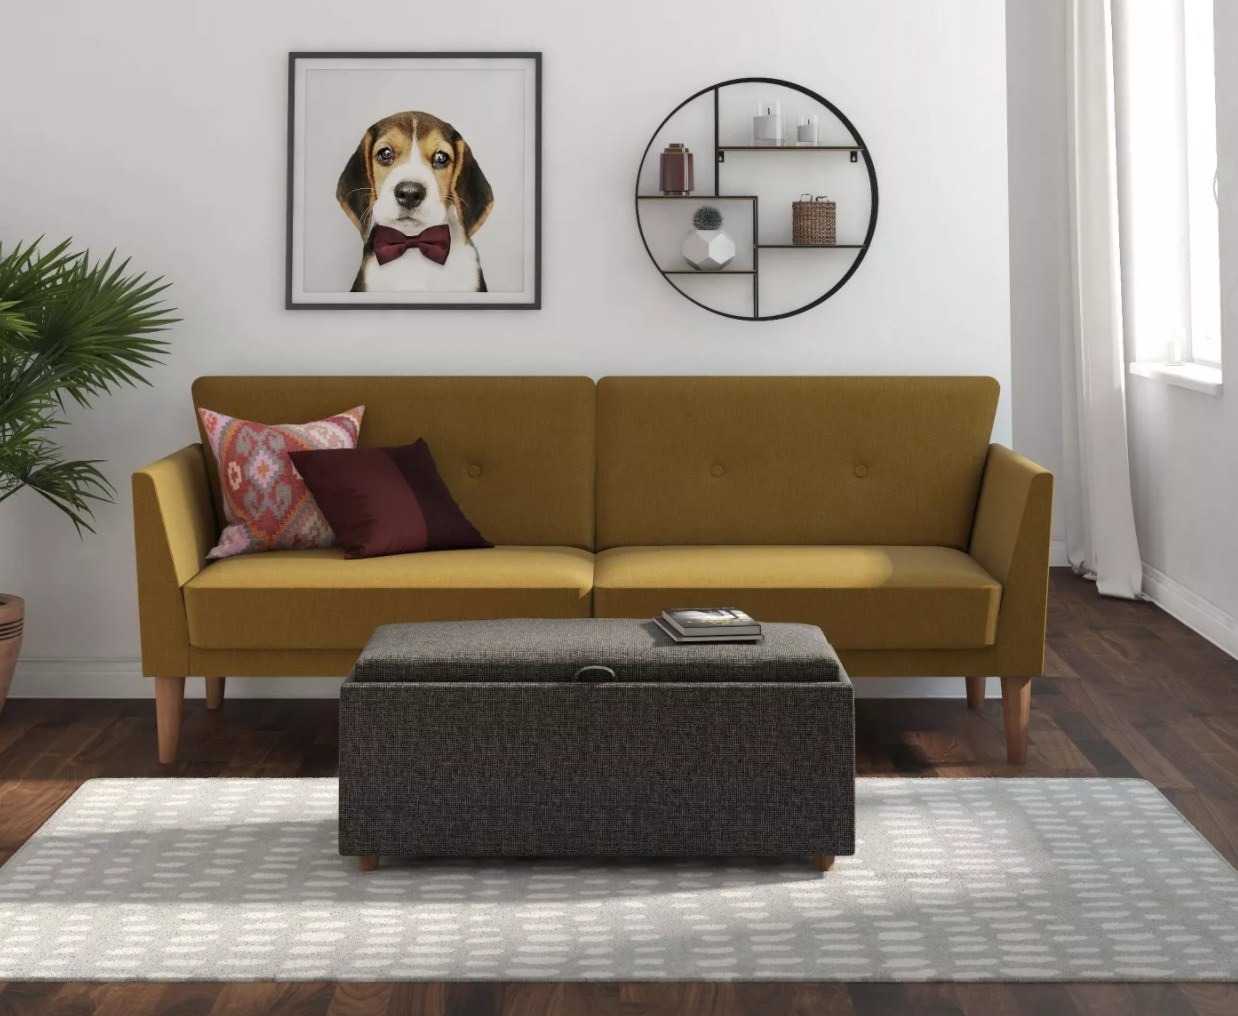 A mustard yellow sofa with wooden legs